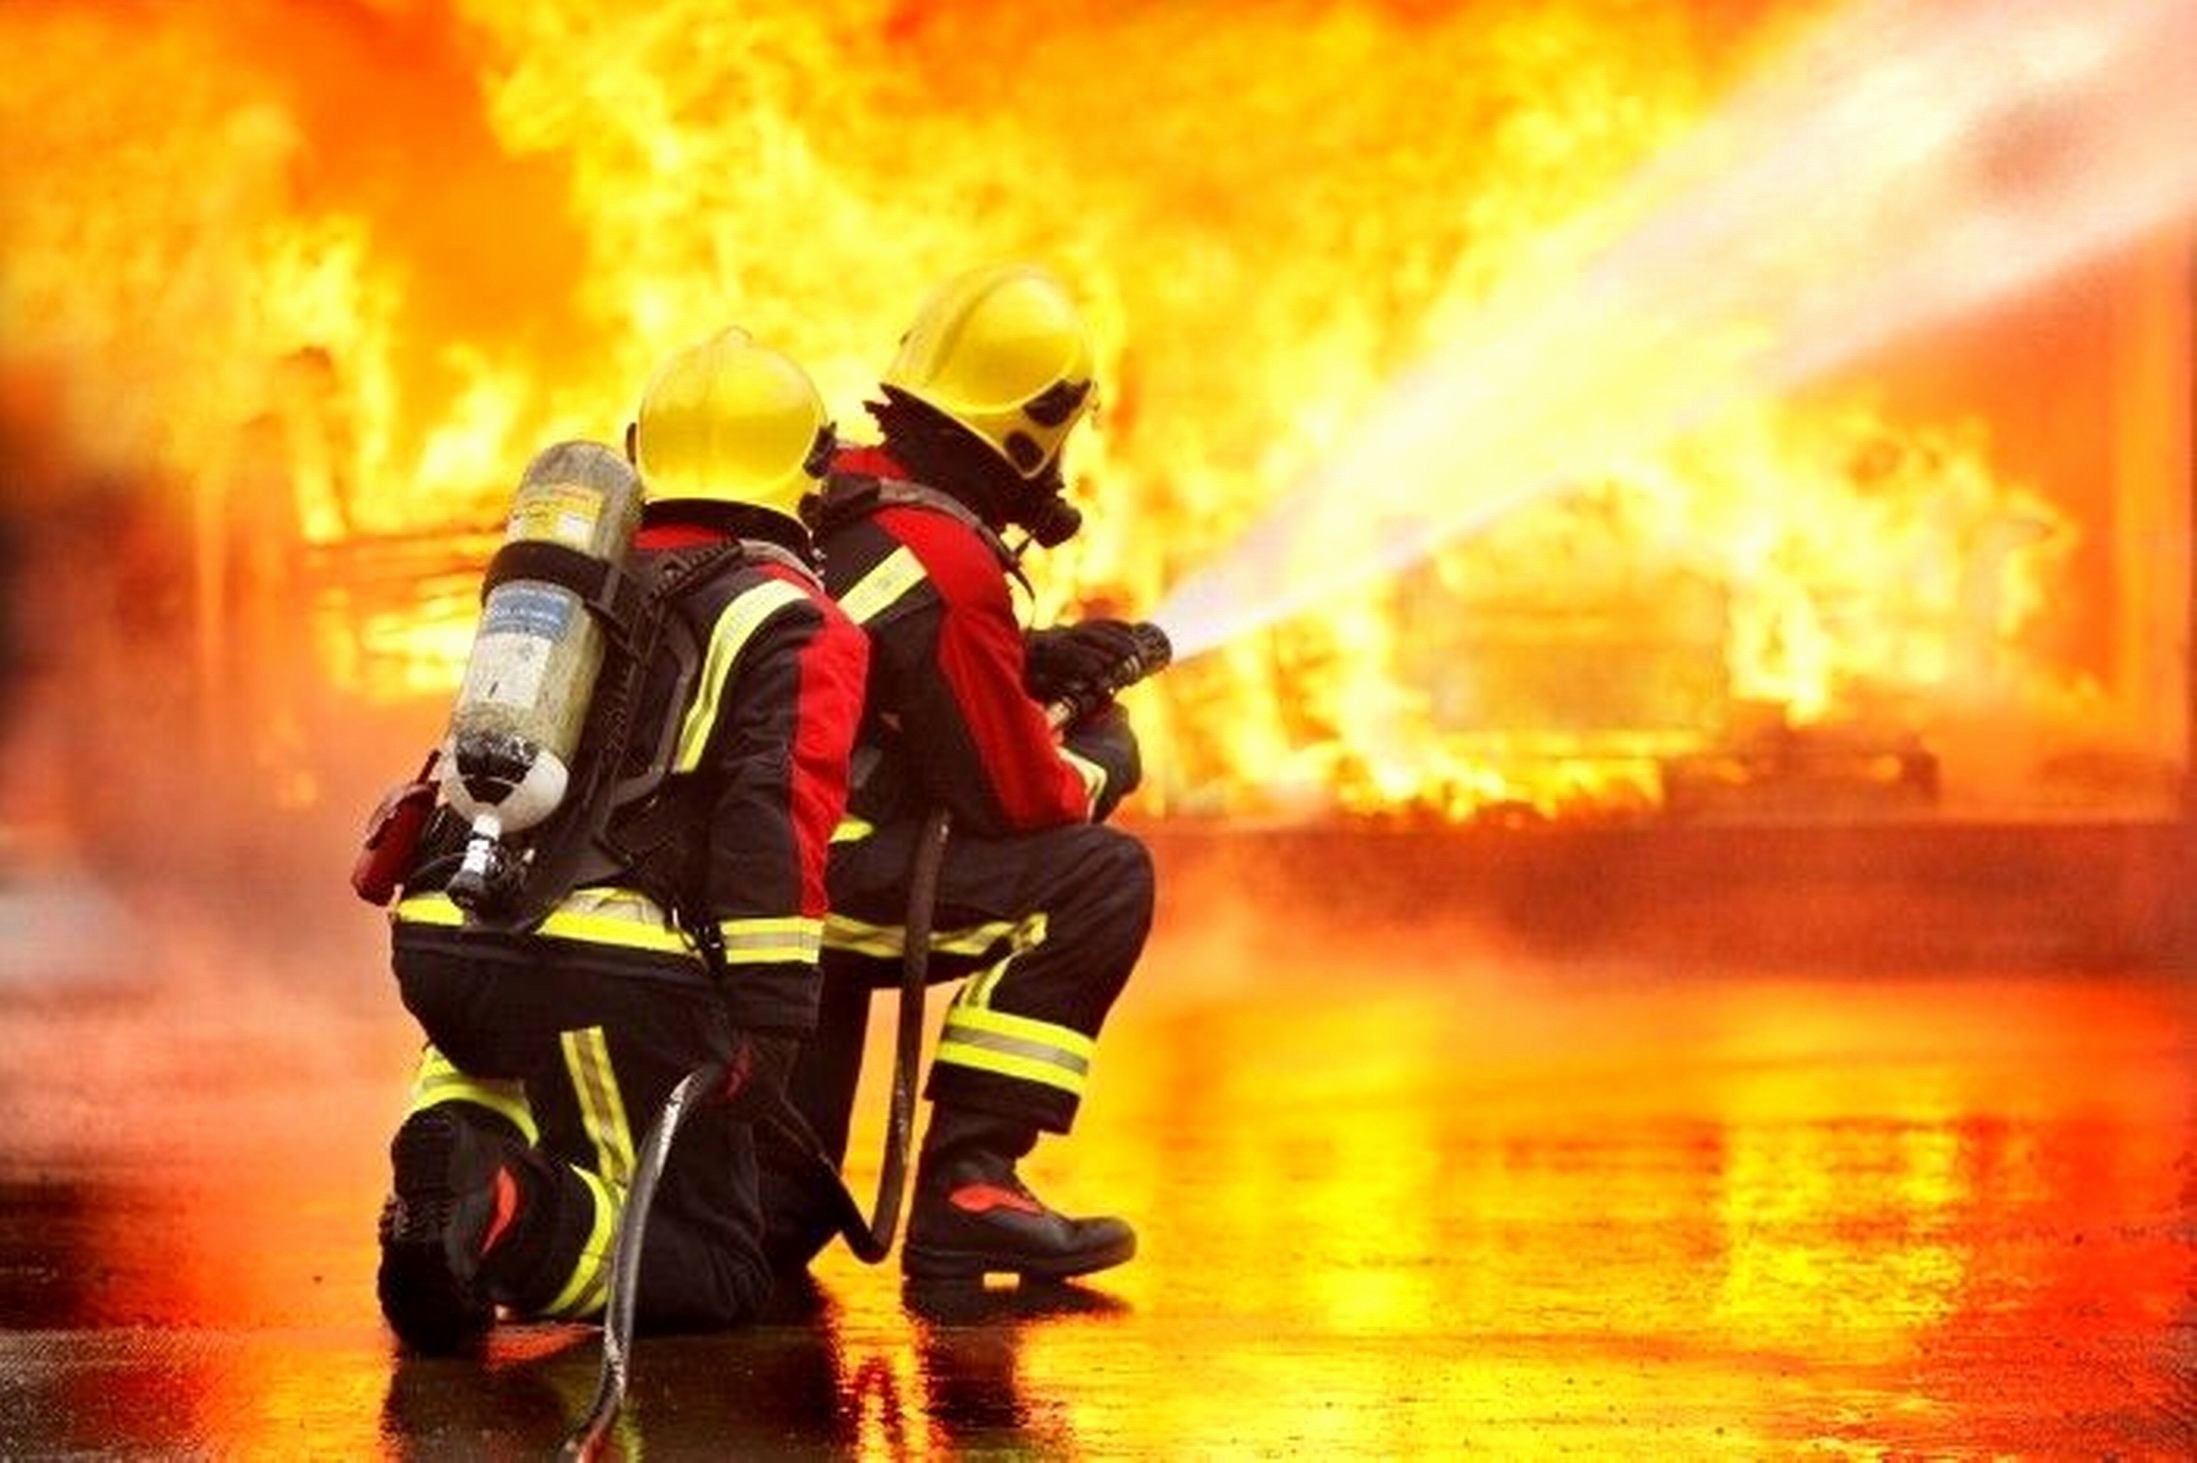 Res: 2197x1463, Firefighter Wallpaper Best Of 100 Firefighter Wallpapers for iPhone 5